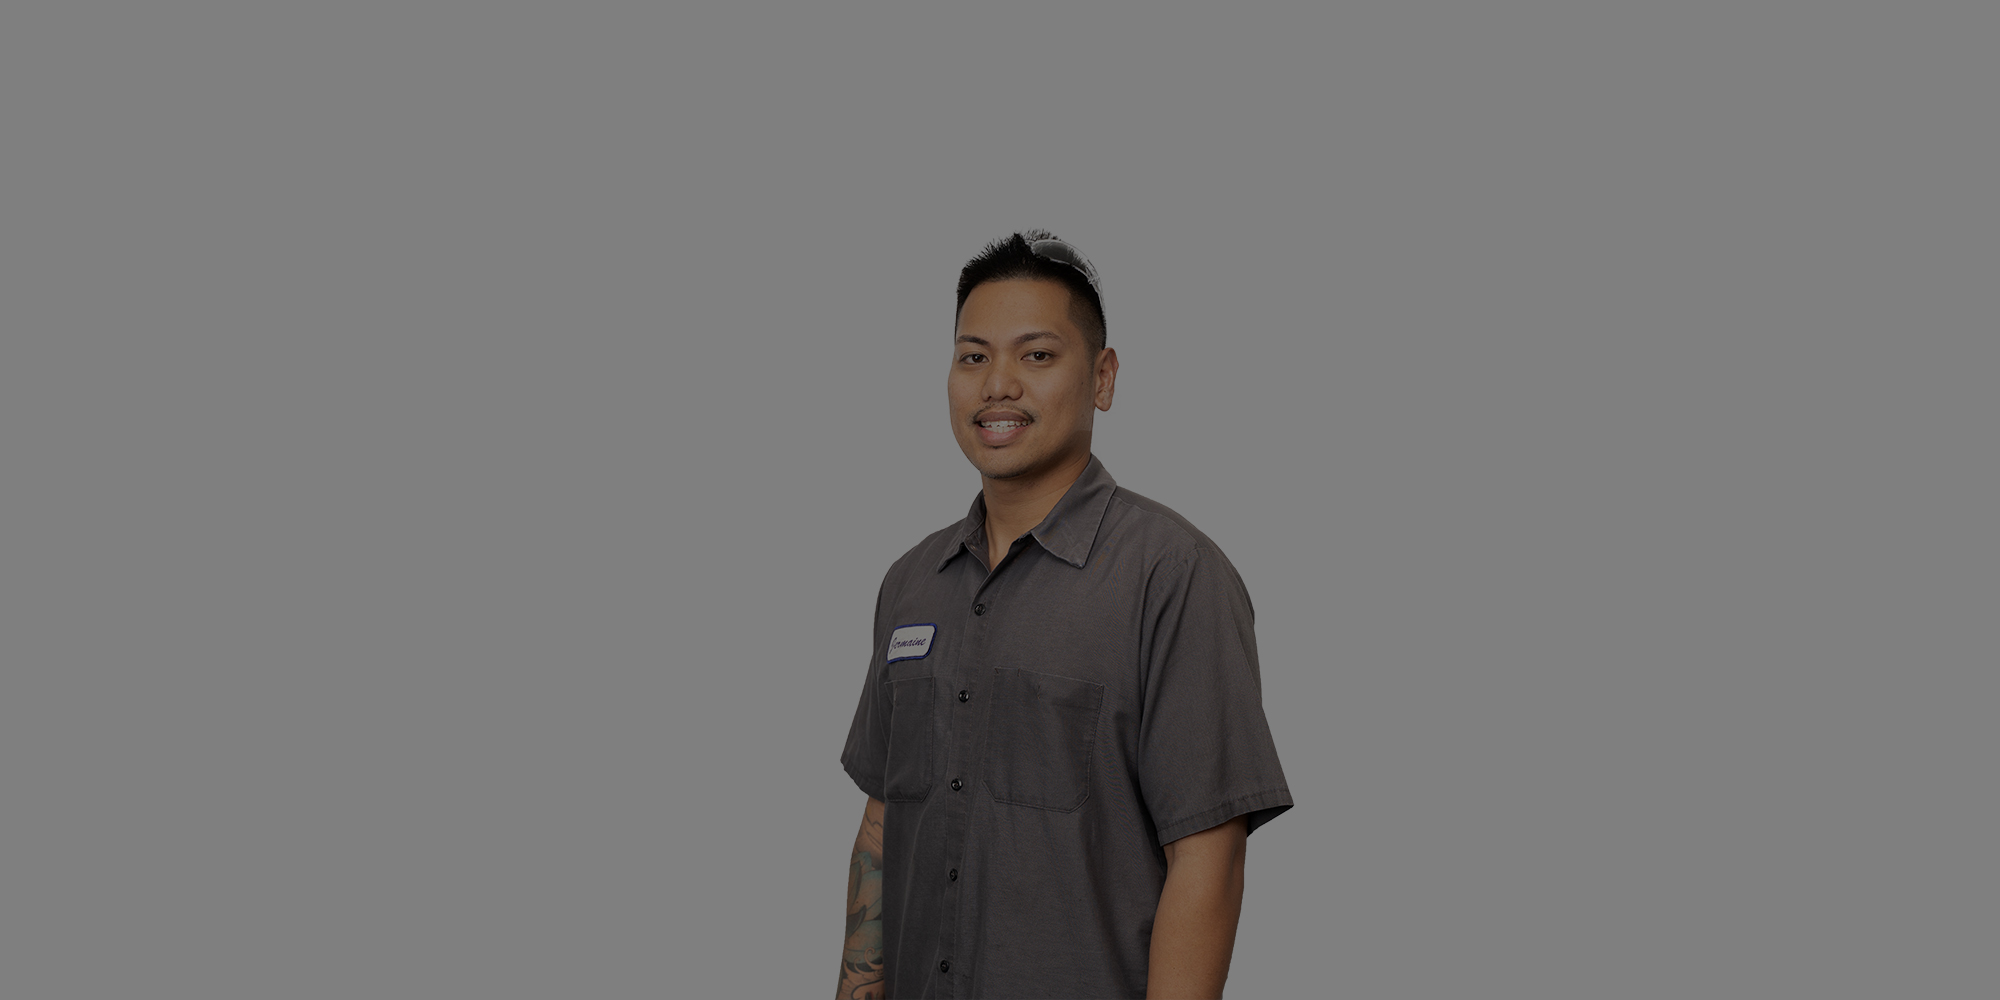 employee_jermaine_2000x1000